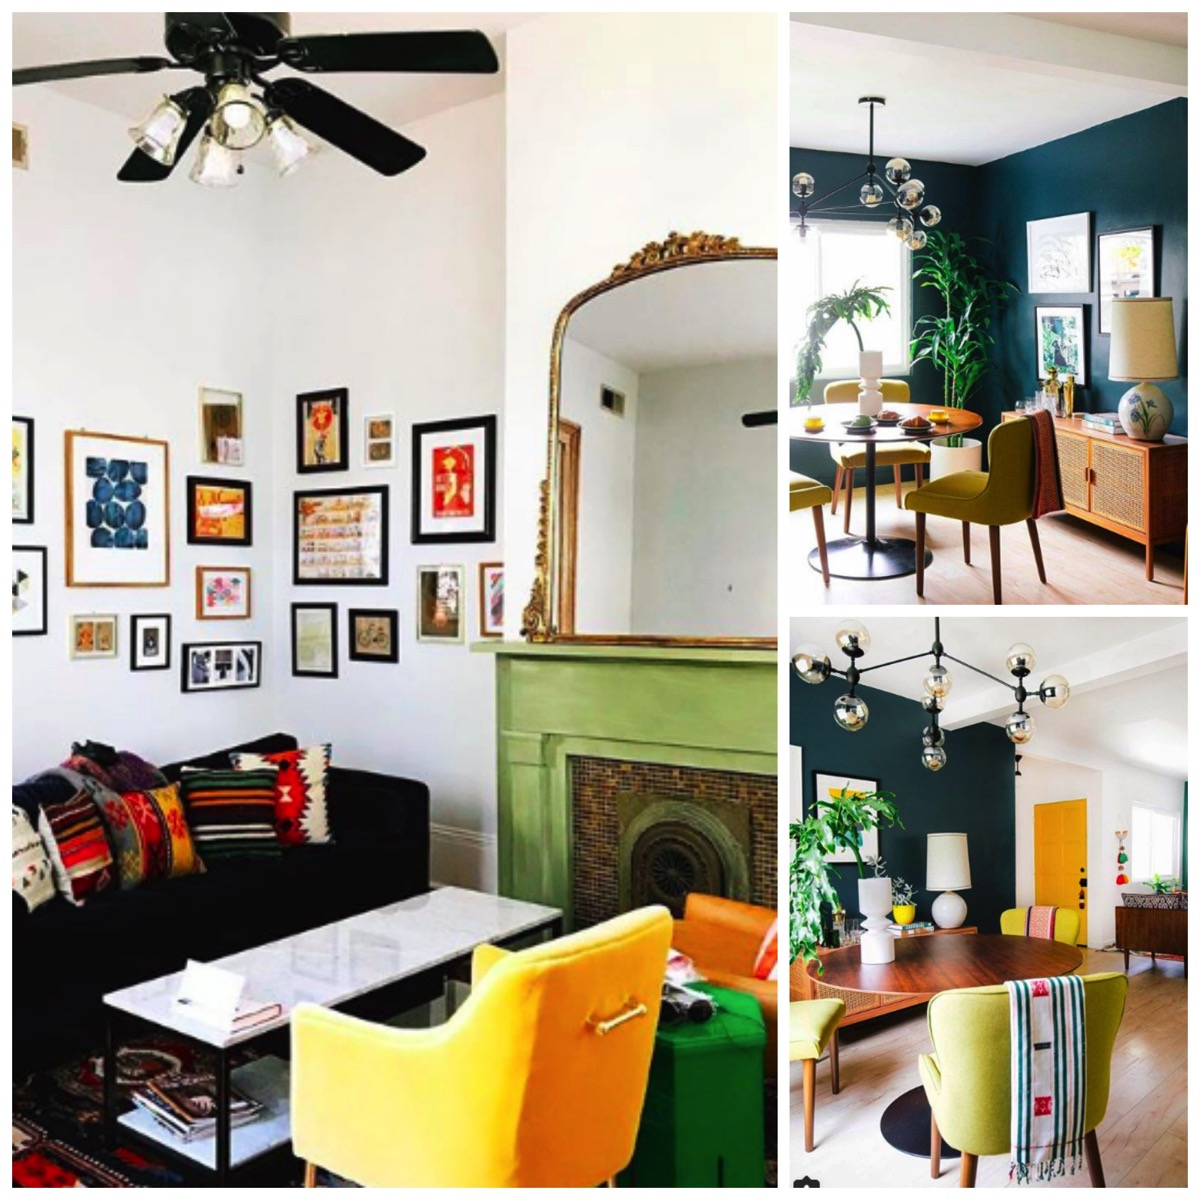 Dabito home tour galllery wall teal livingroom